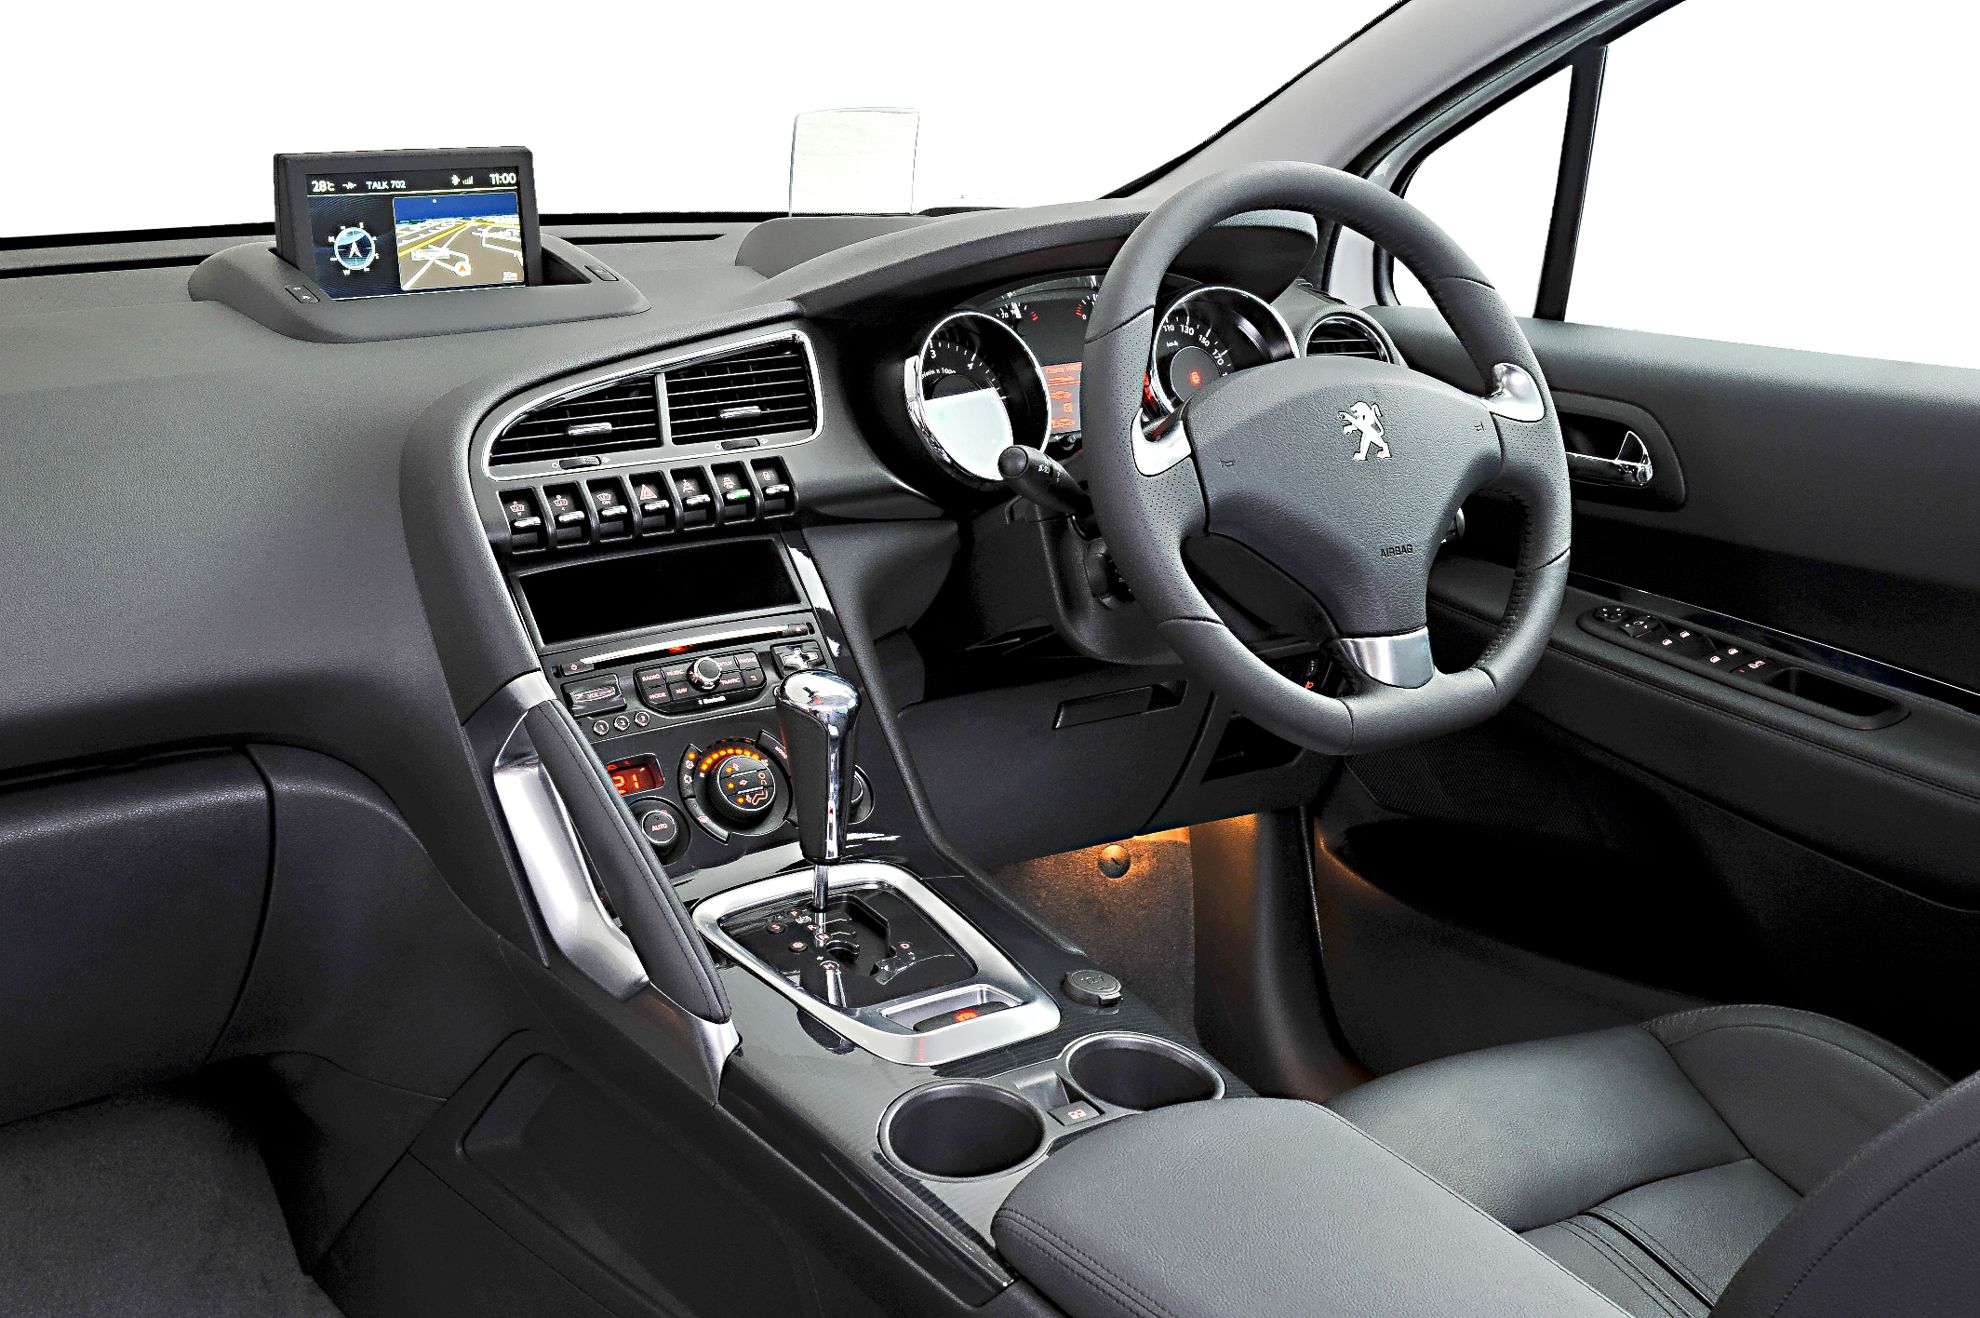 Image gallery peugeot 3008 interior